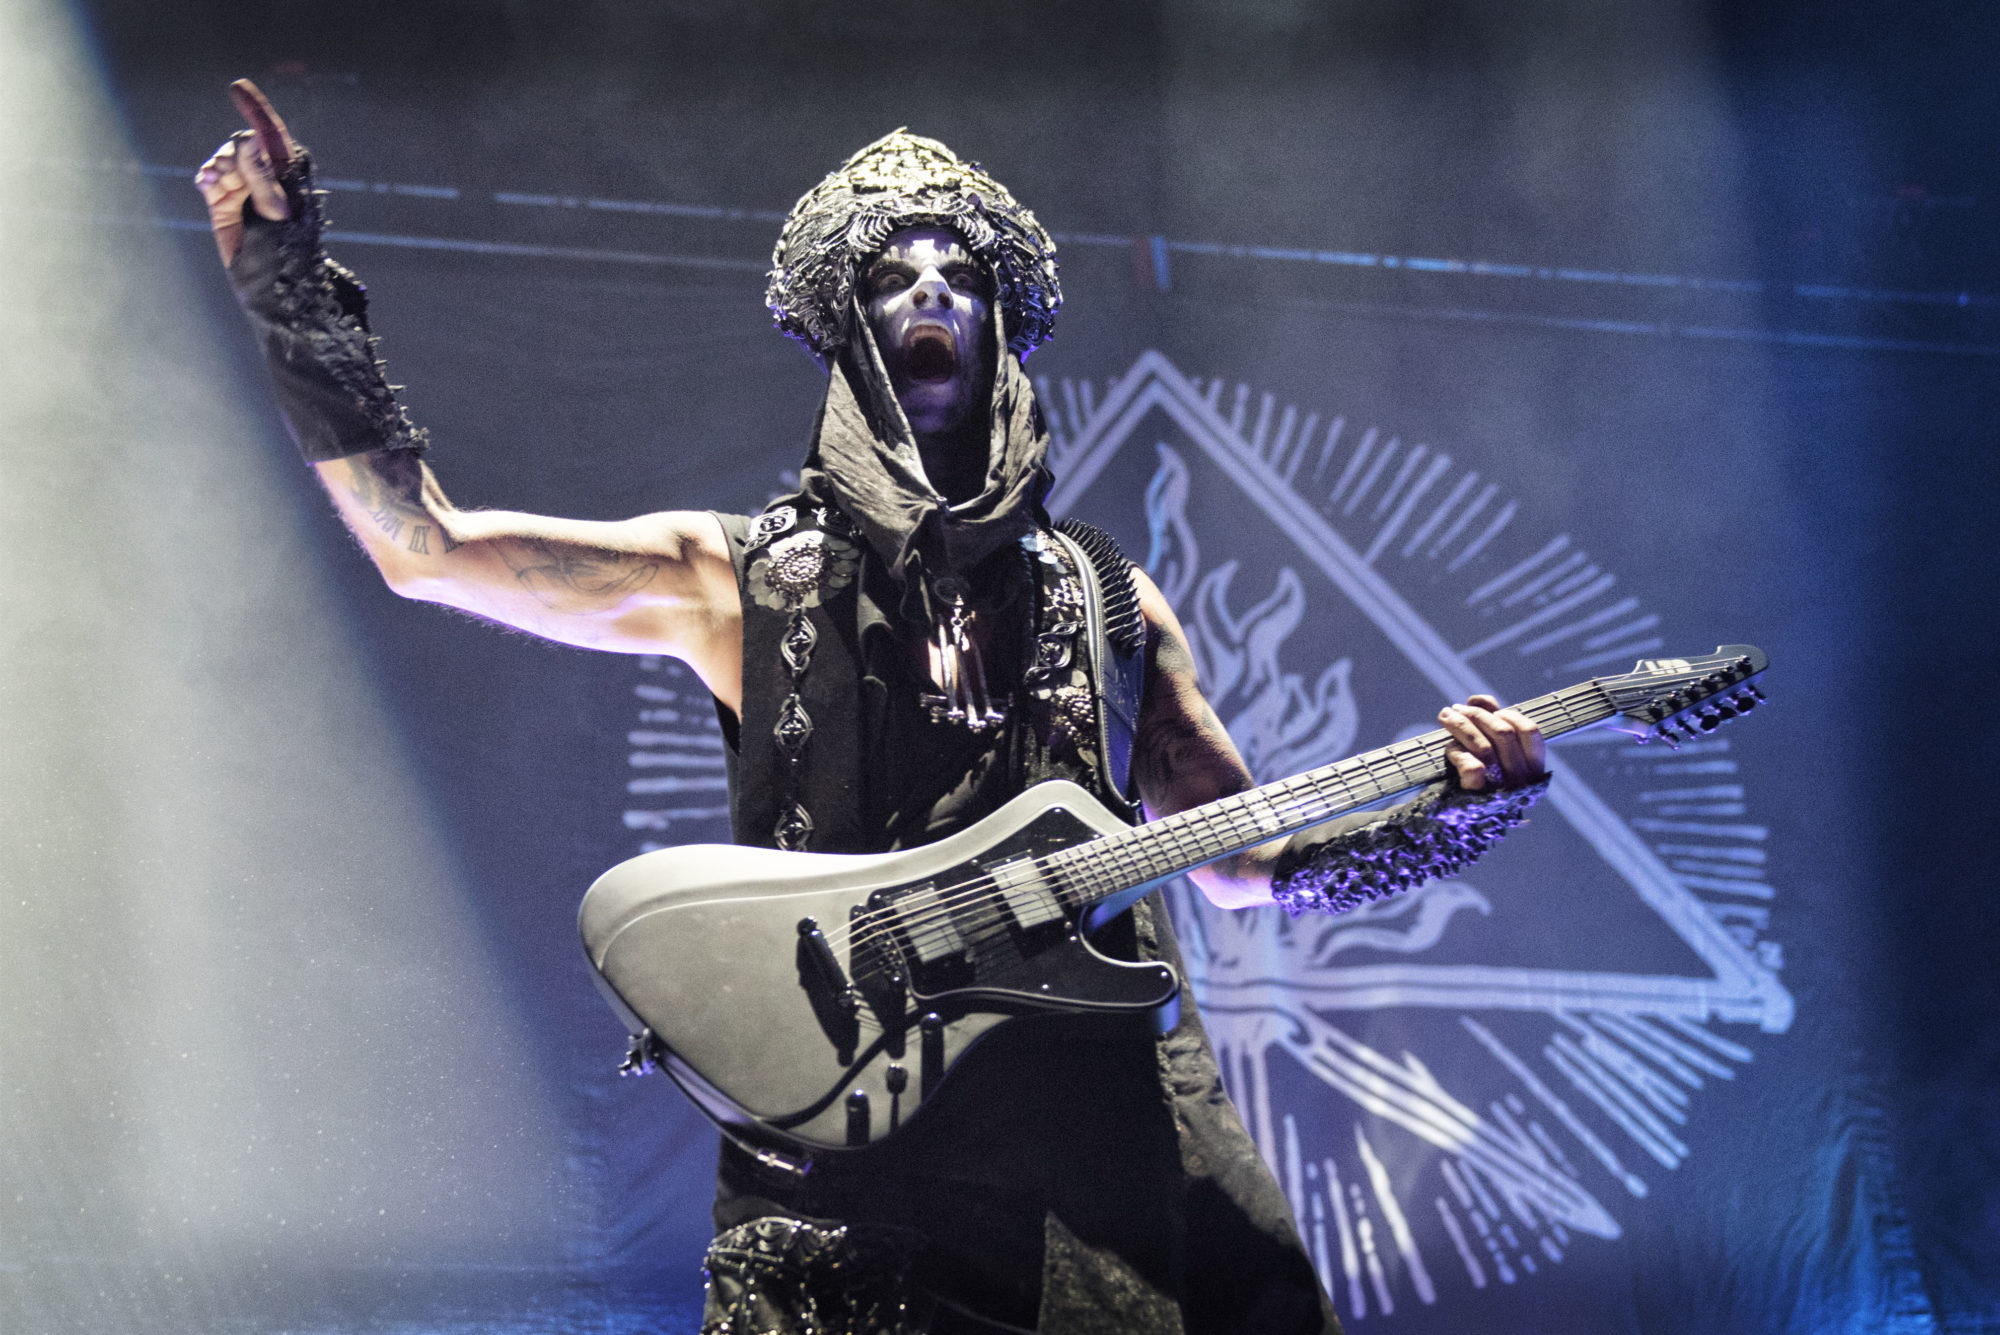 Behemoth live 6 © Melanie Smith